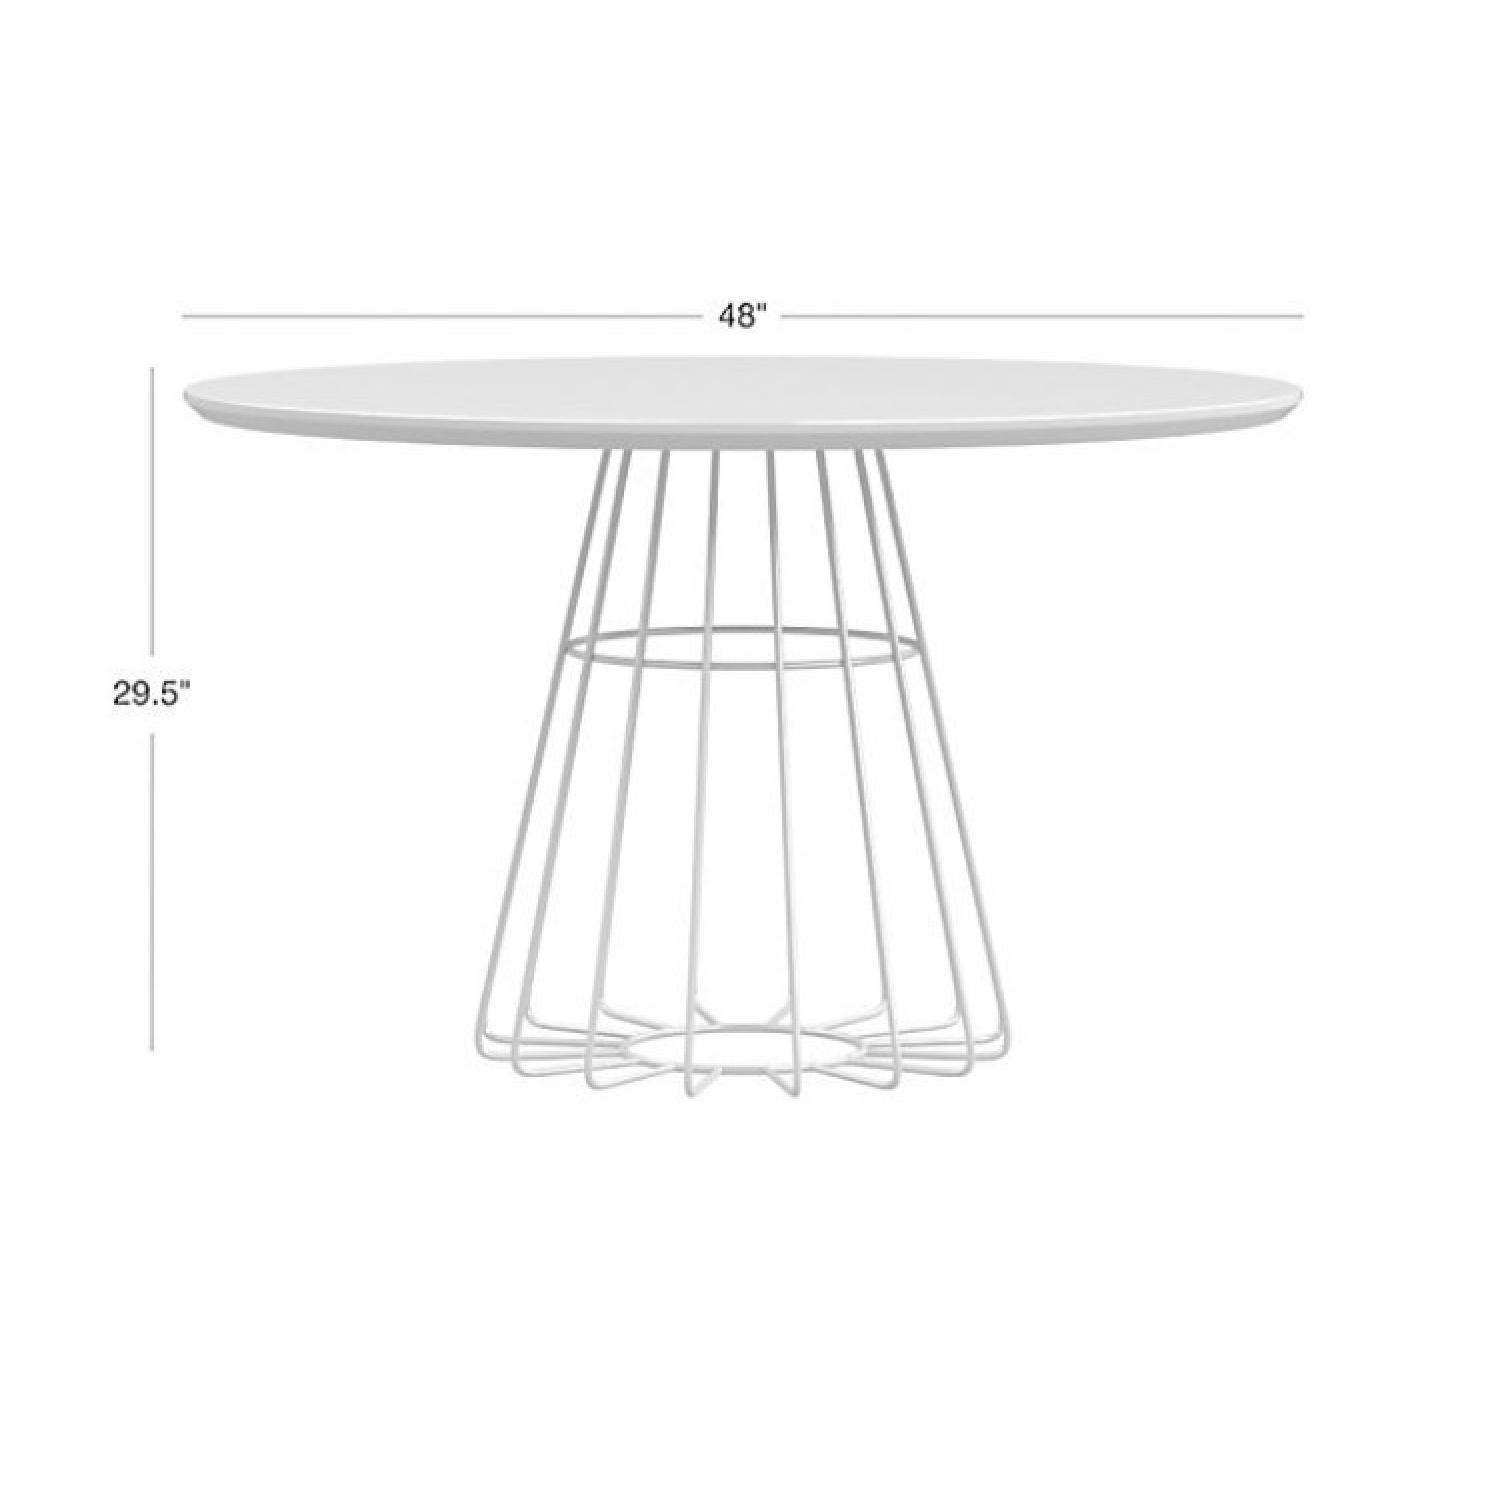 CB2 Compass Dining Table - image-2